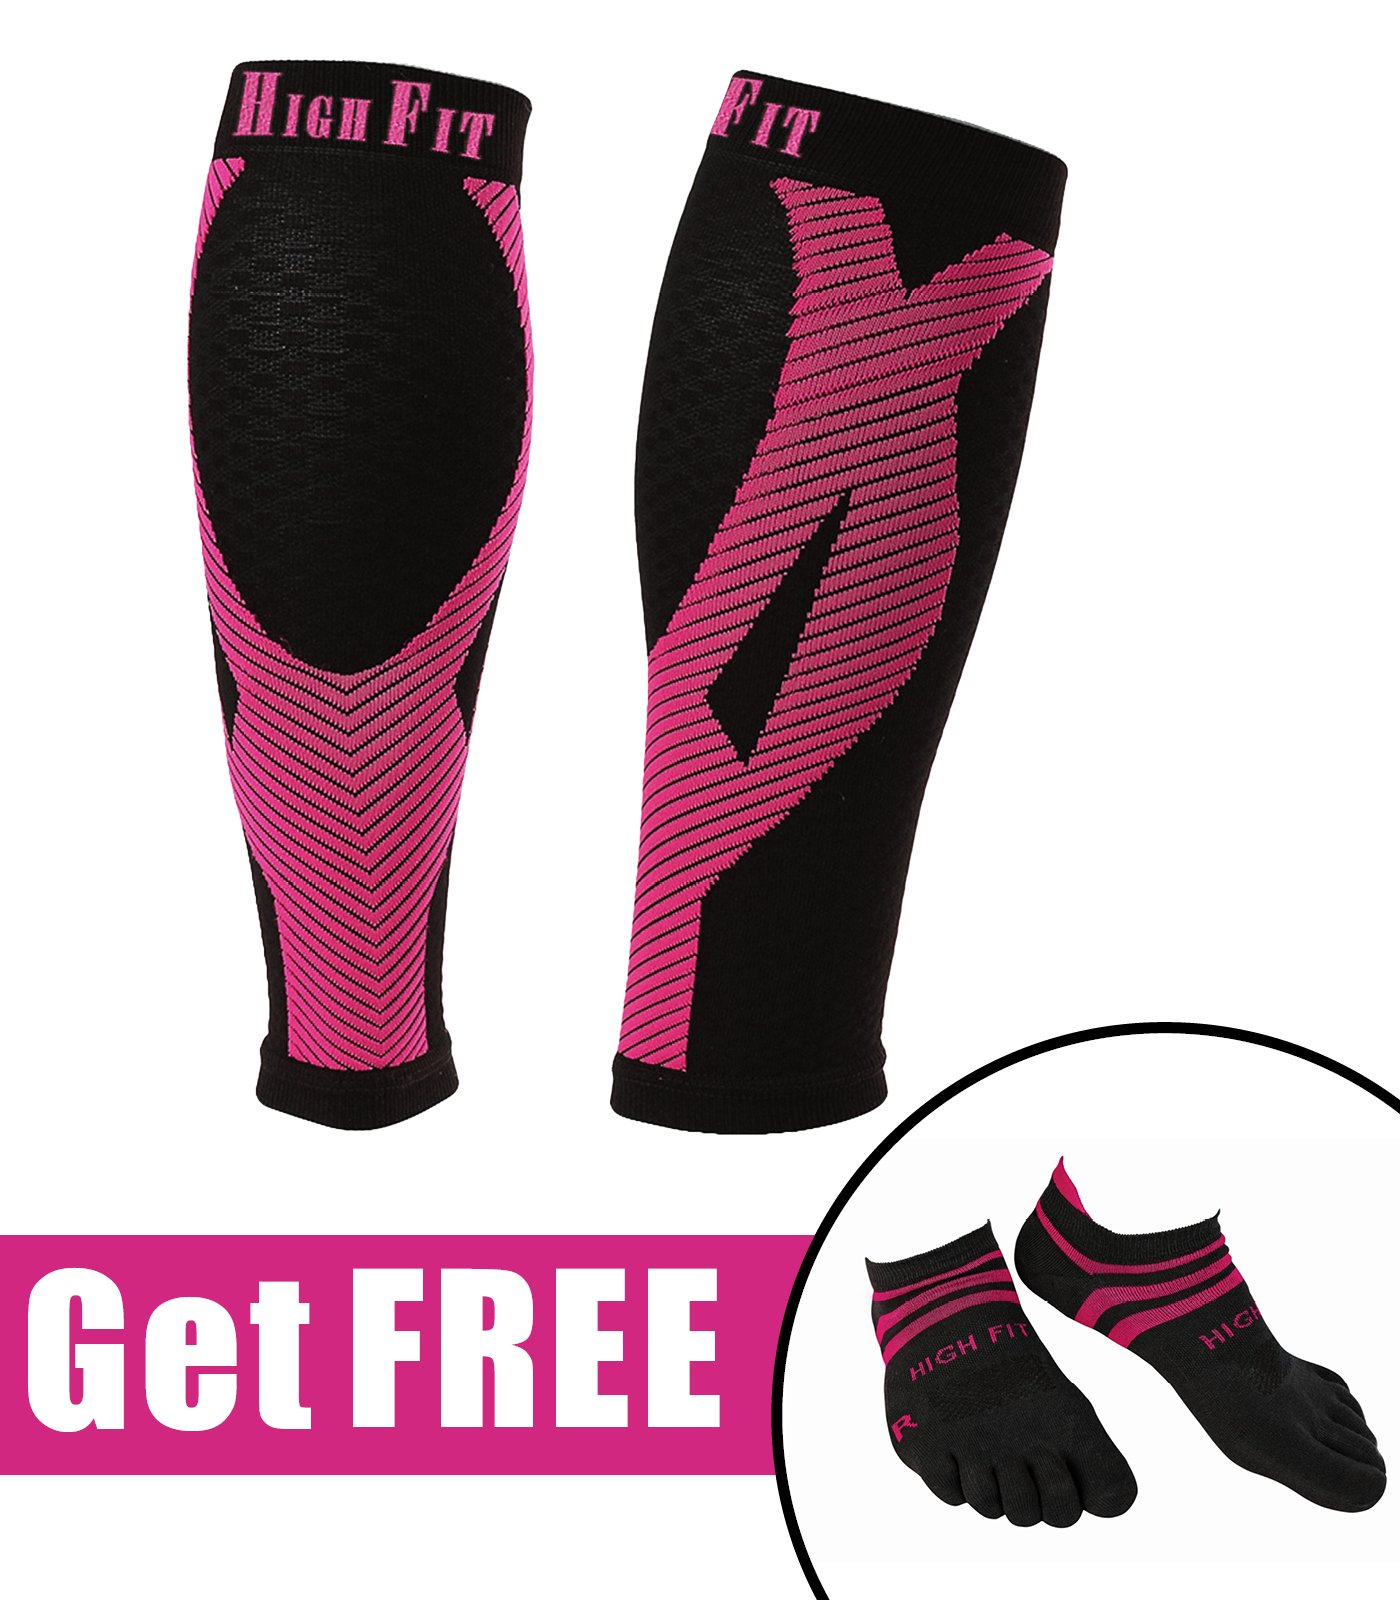 HIGH FIT Pro Calf Compression Sleeve + Free Seamless Sport Socks - Enjoy Extra Support, Enhanced Performance & Faster Recovery (Pink, L)